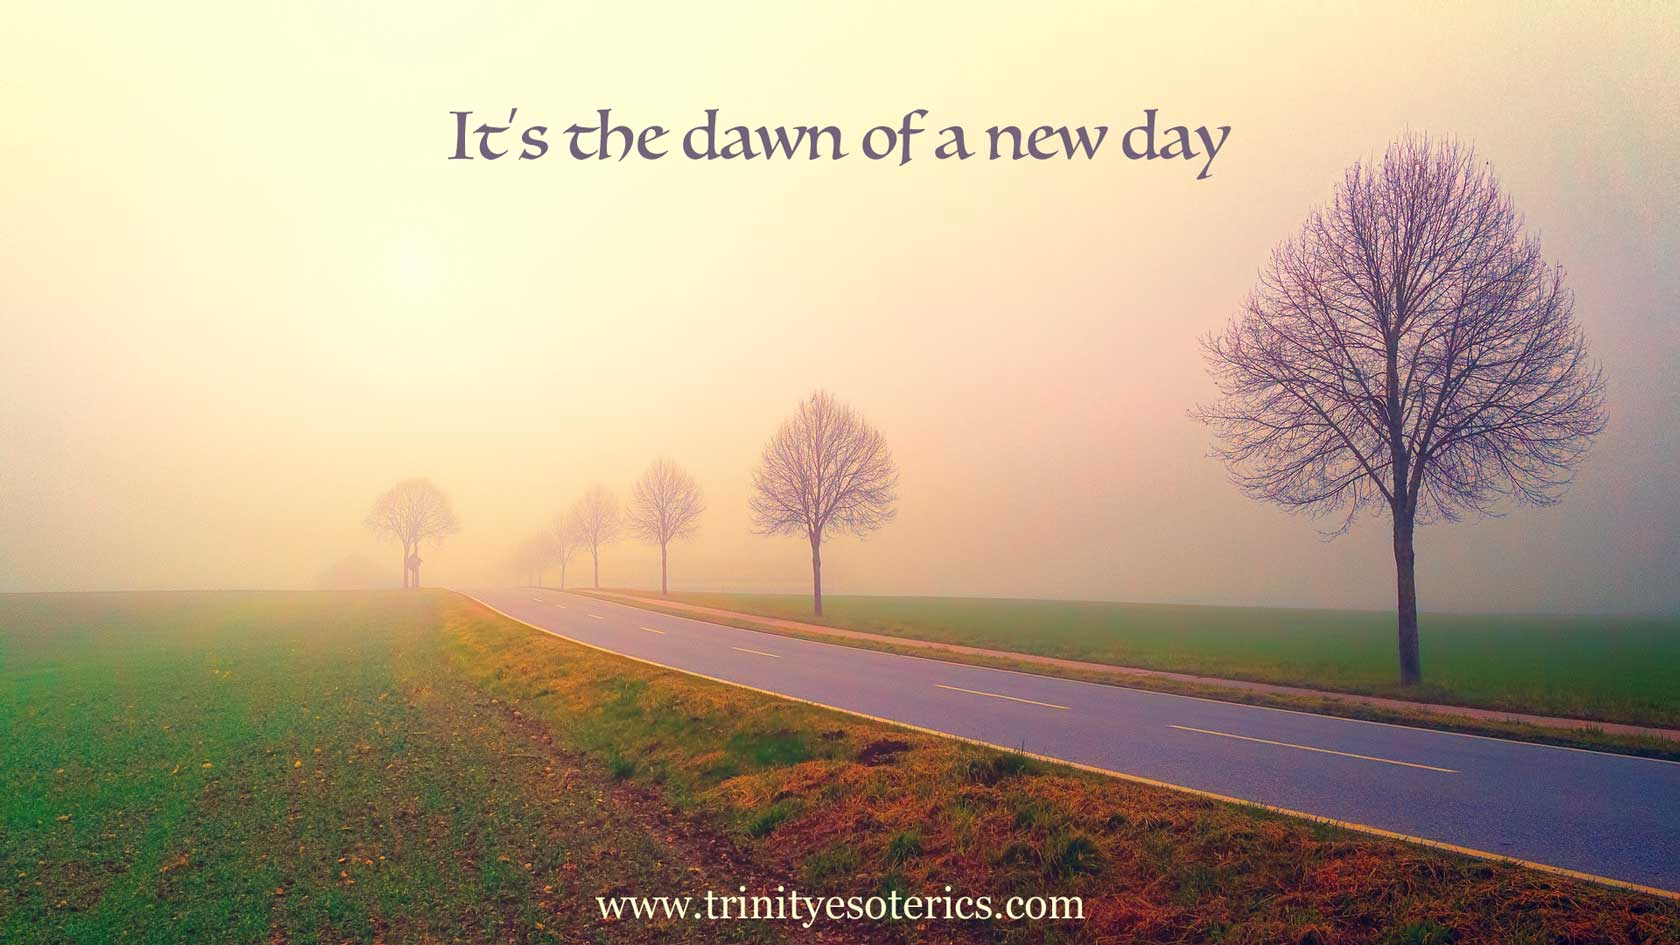 road at dawn trinity esoterics